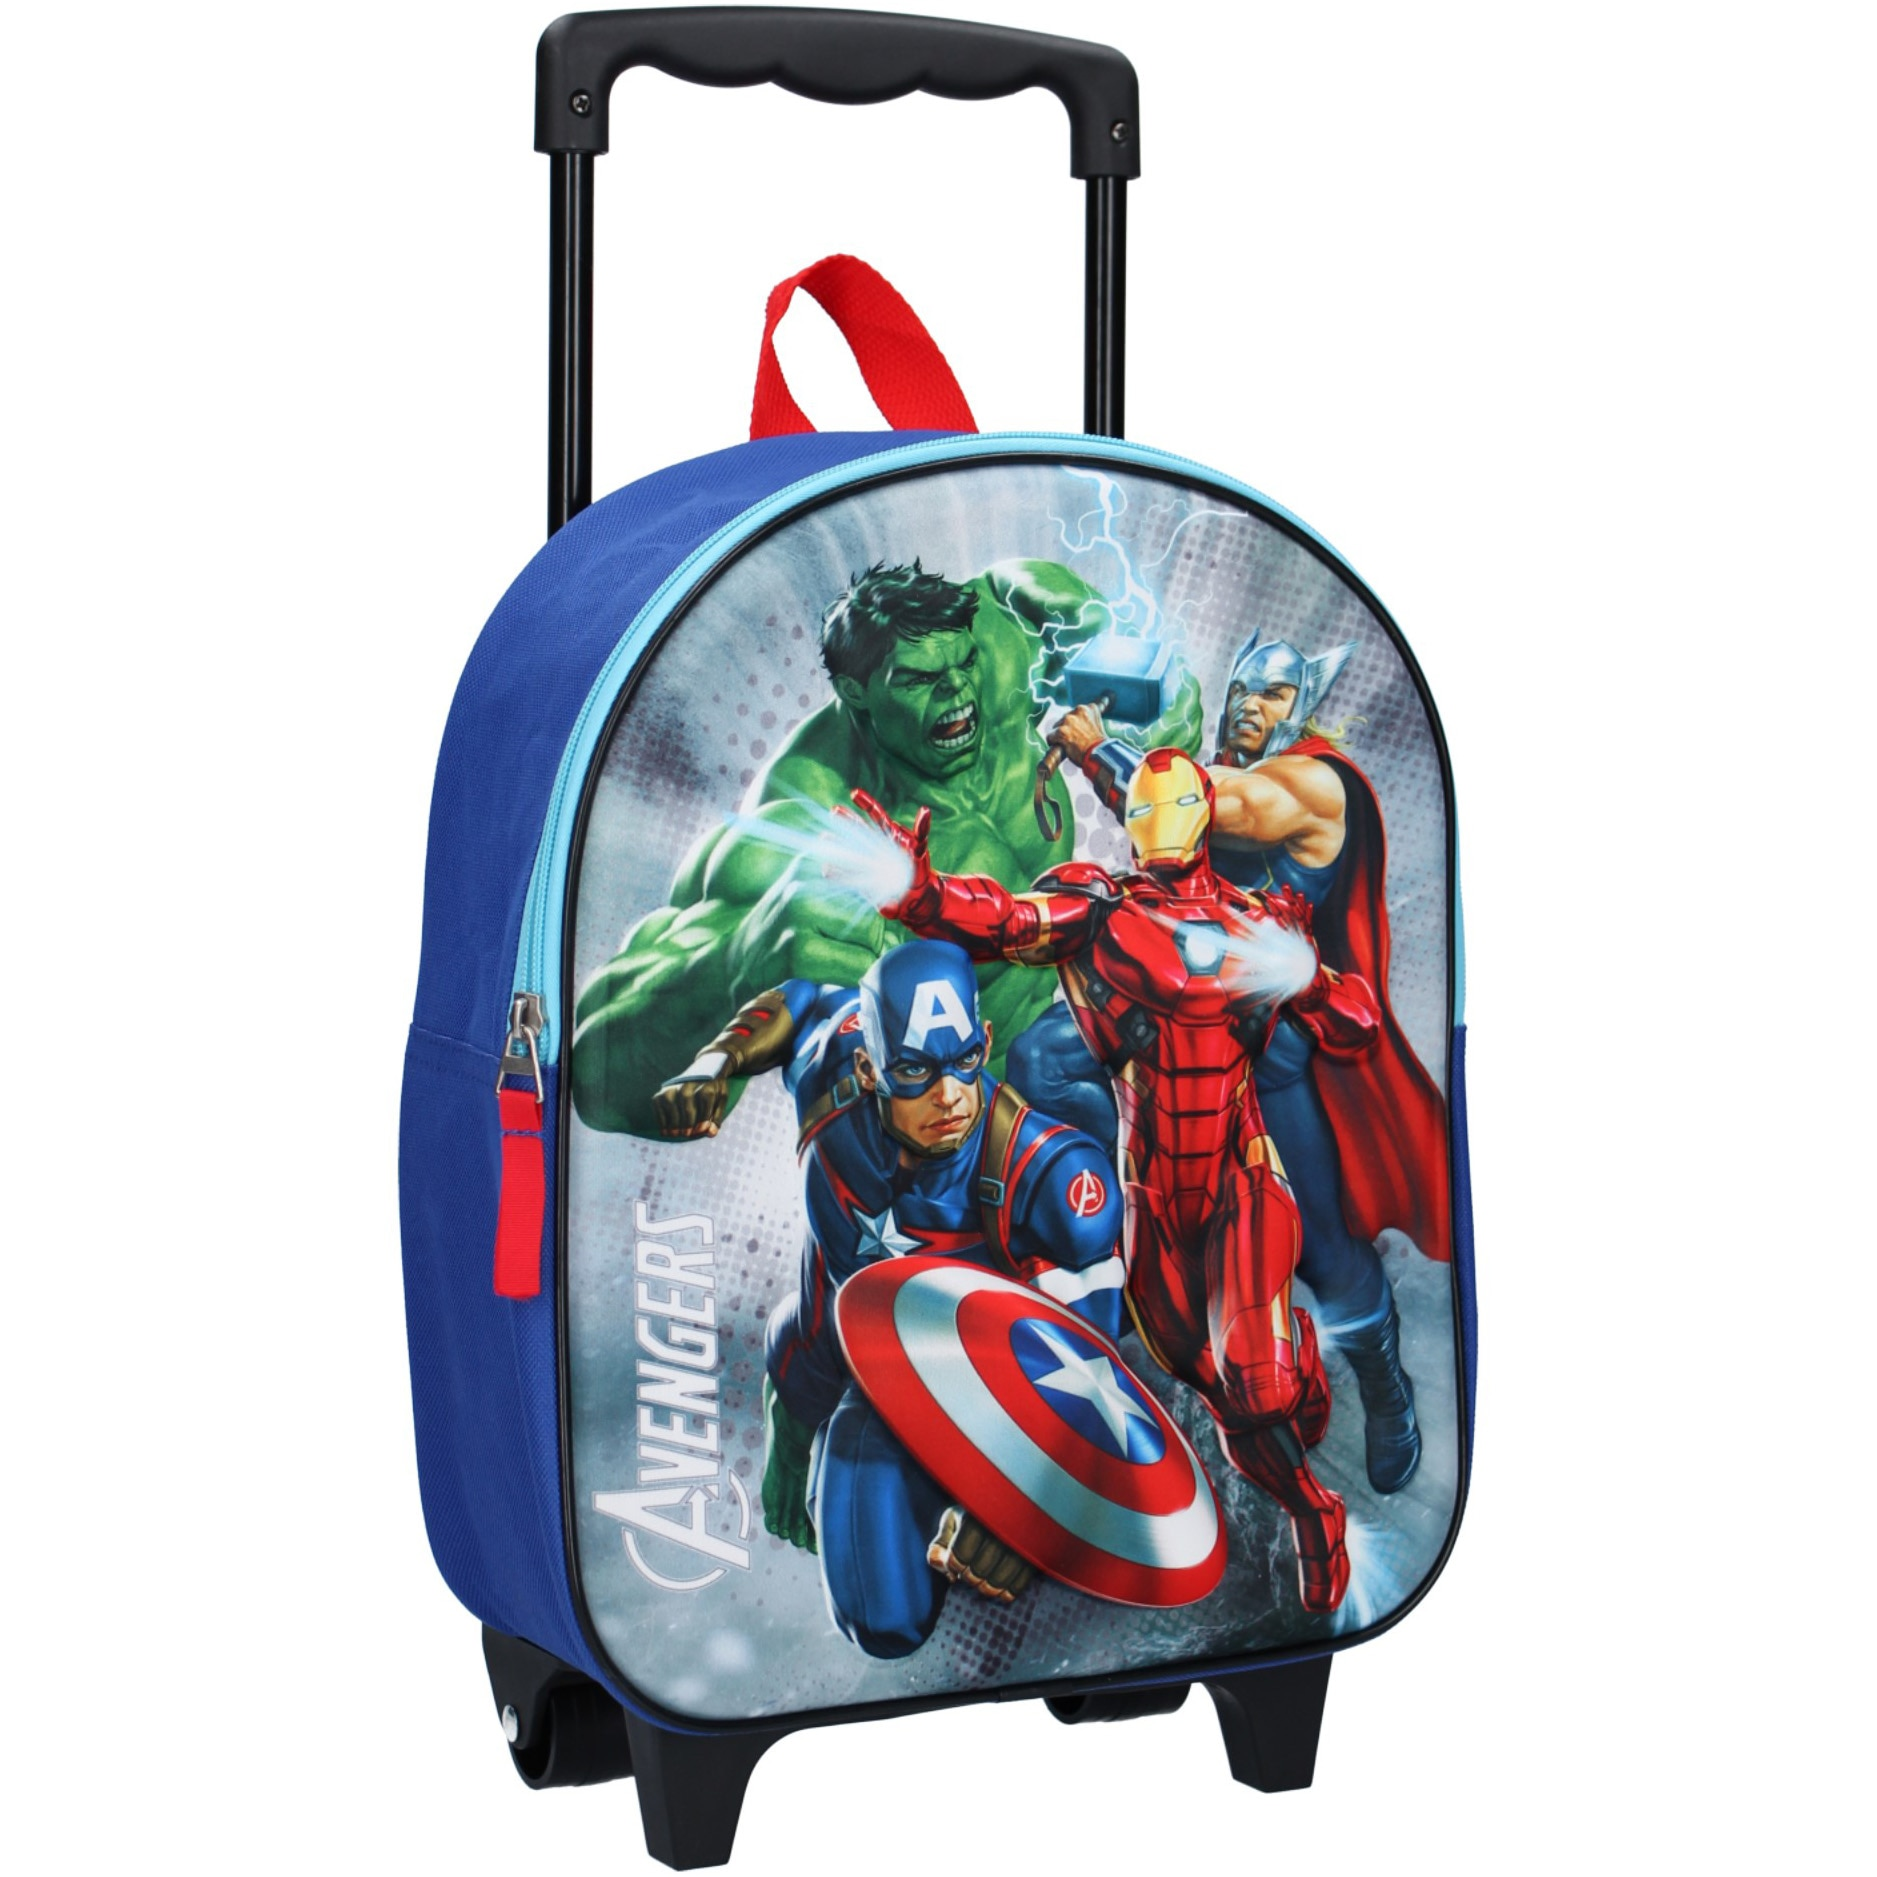 Fotografie Ghiozdan Troller Avengers Save The day (3D), 12 x 25 x 31 cm